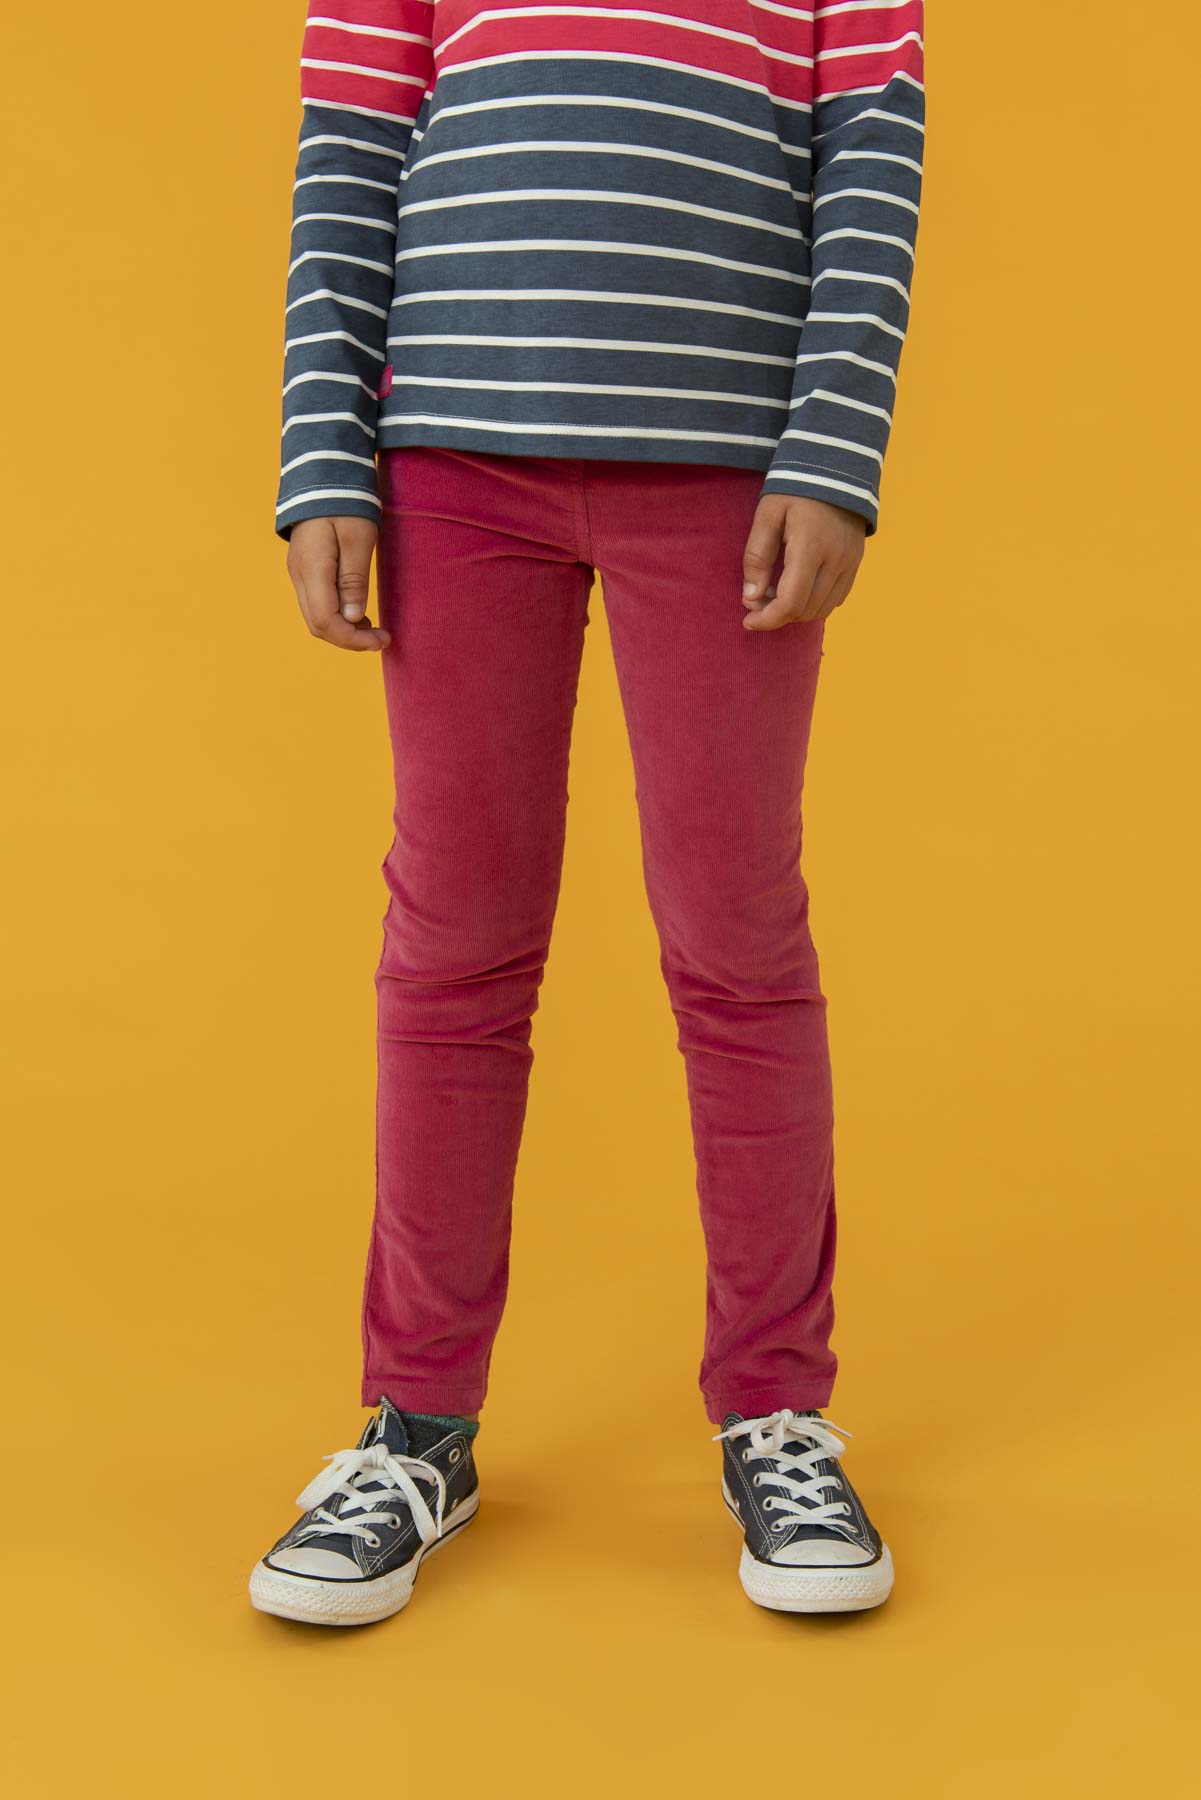 Izzy Trousers - Pink, Girl's Cord Leggings | Lighthouse